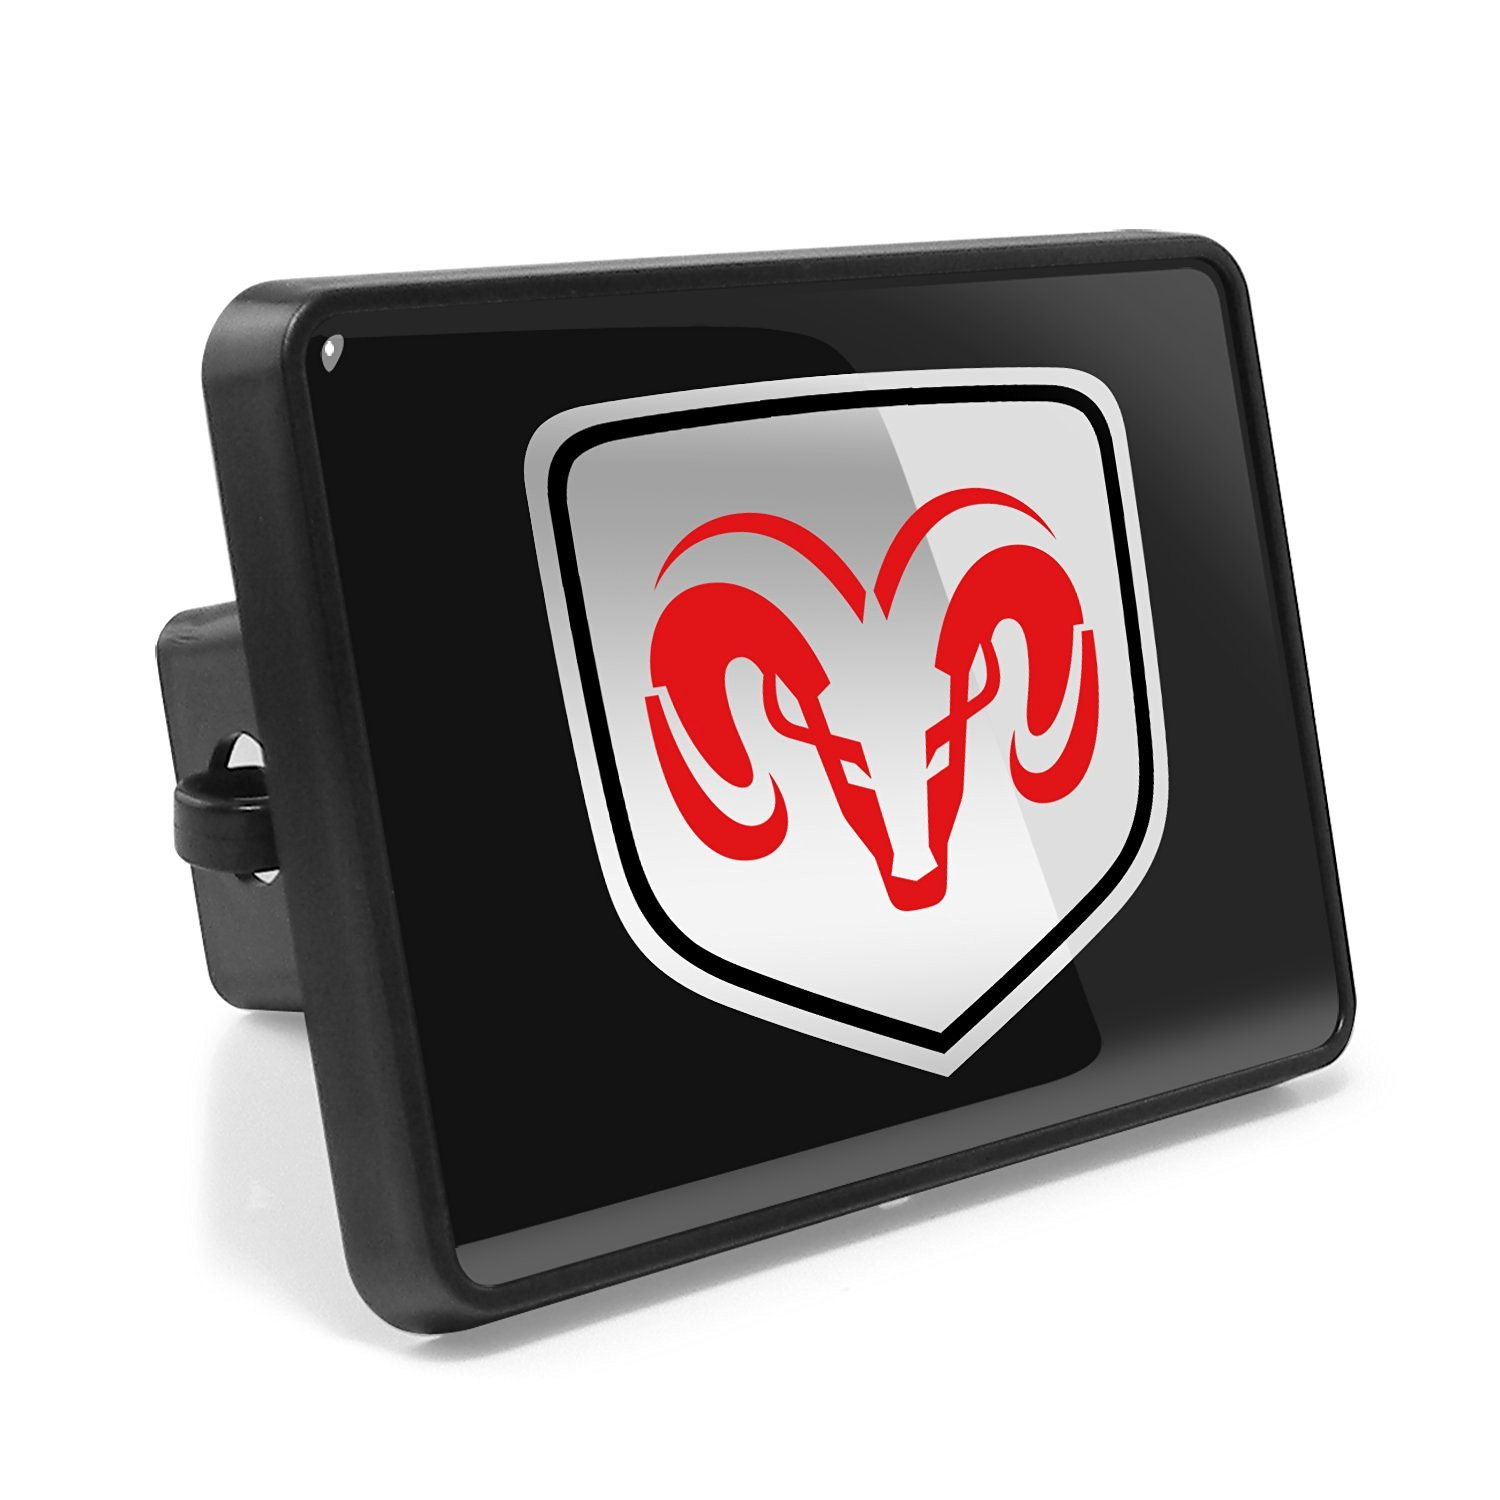 Buy Dodge Ram Abs Plastic 2 Plug Tow Hitch Cover In Cheap Price On